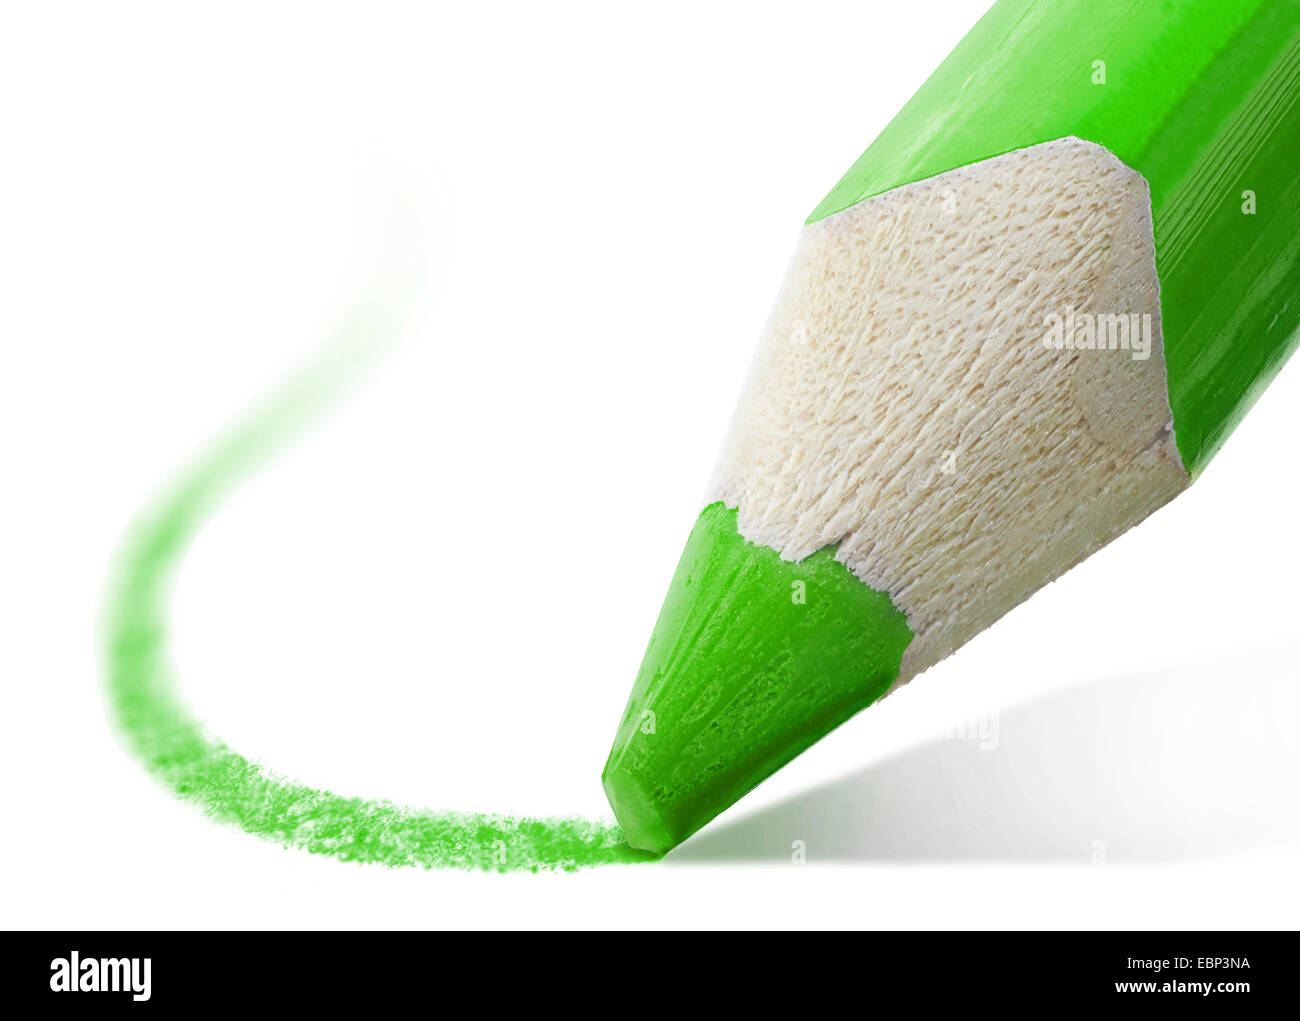 macro shot of the tip of a green pencil - Stock Image